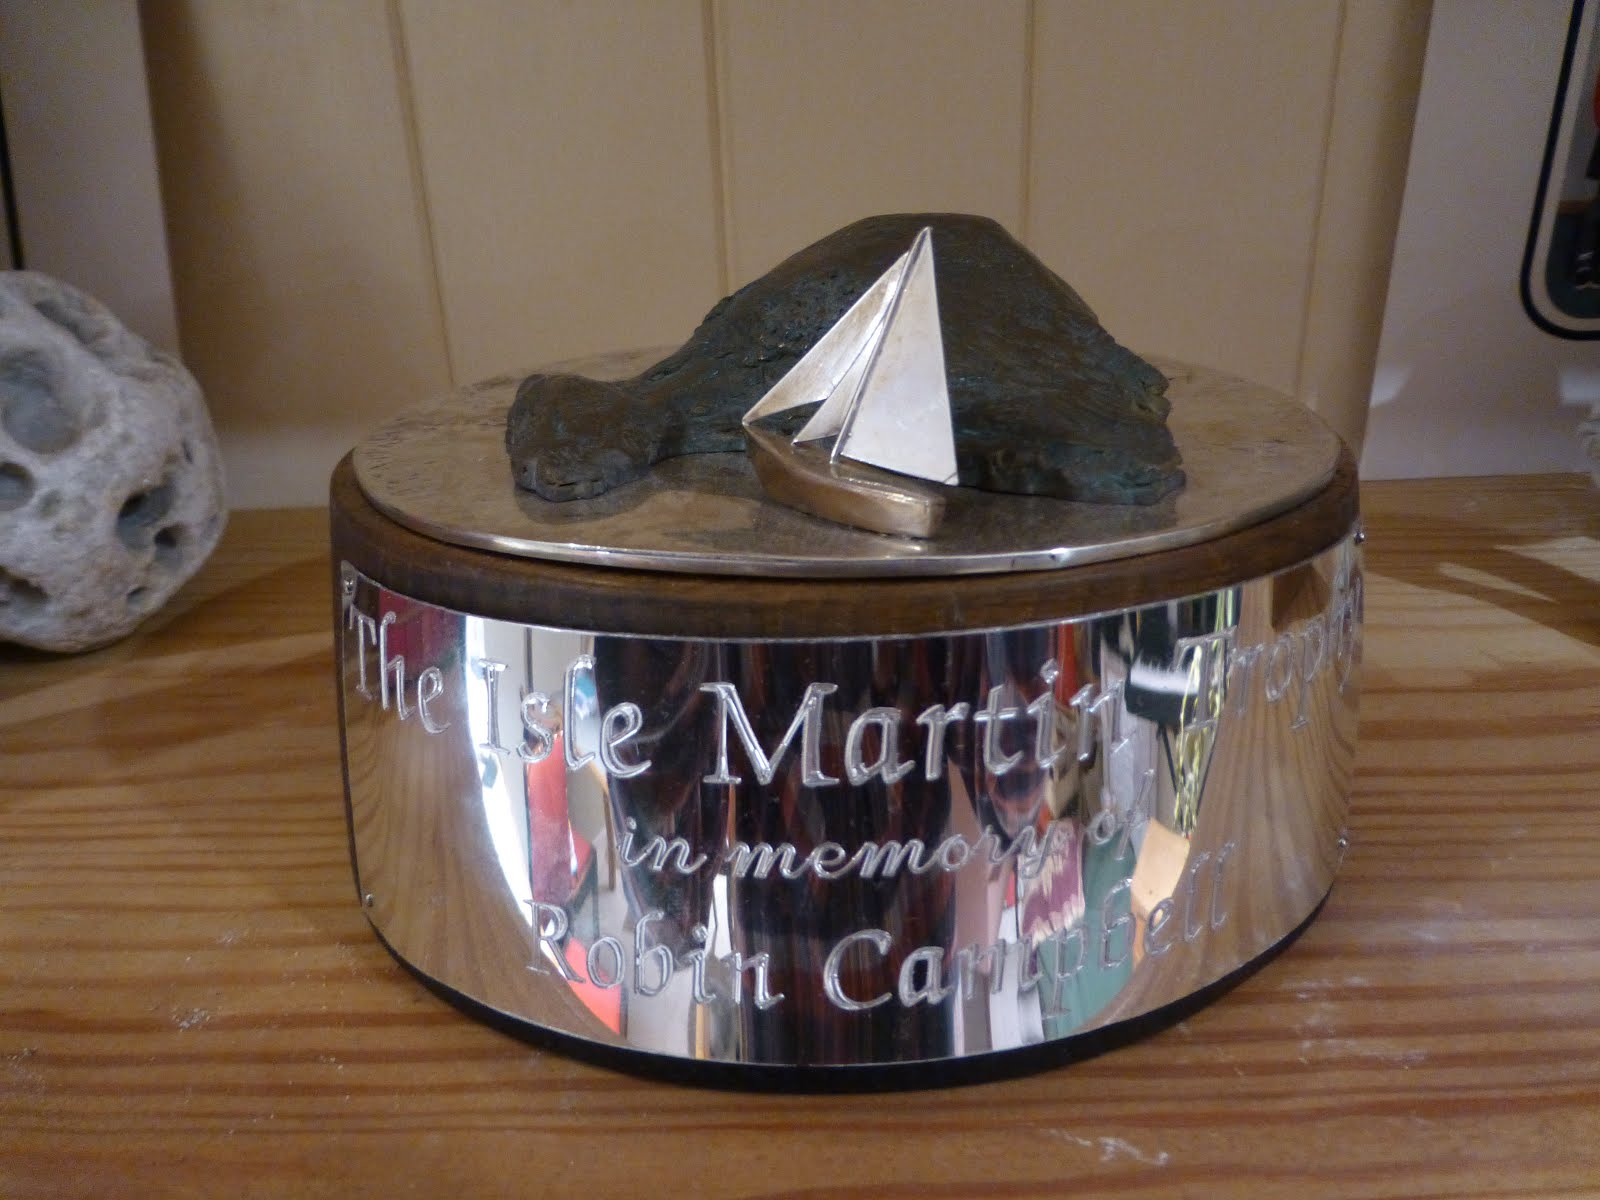 The Isle Martin Trophy